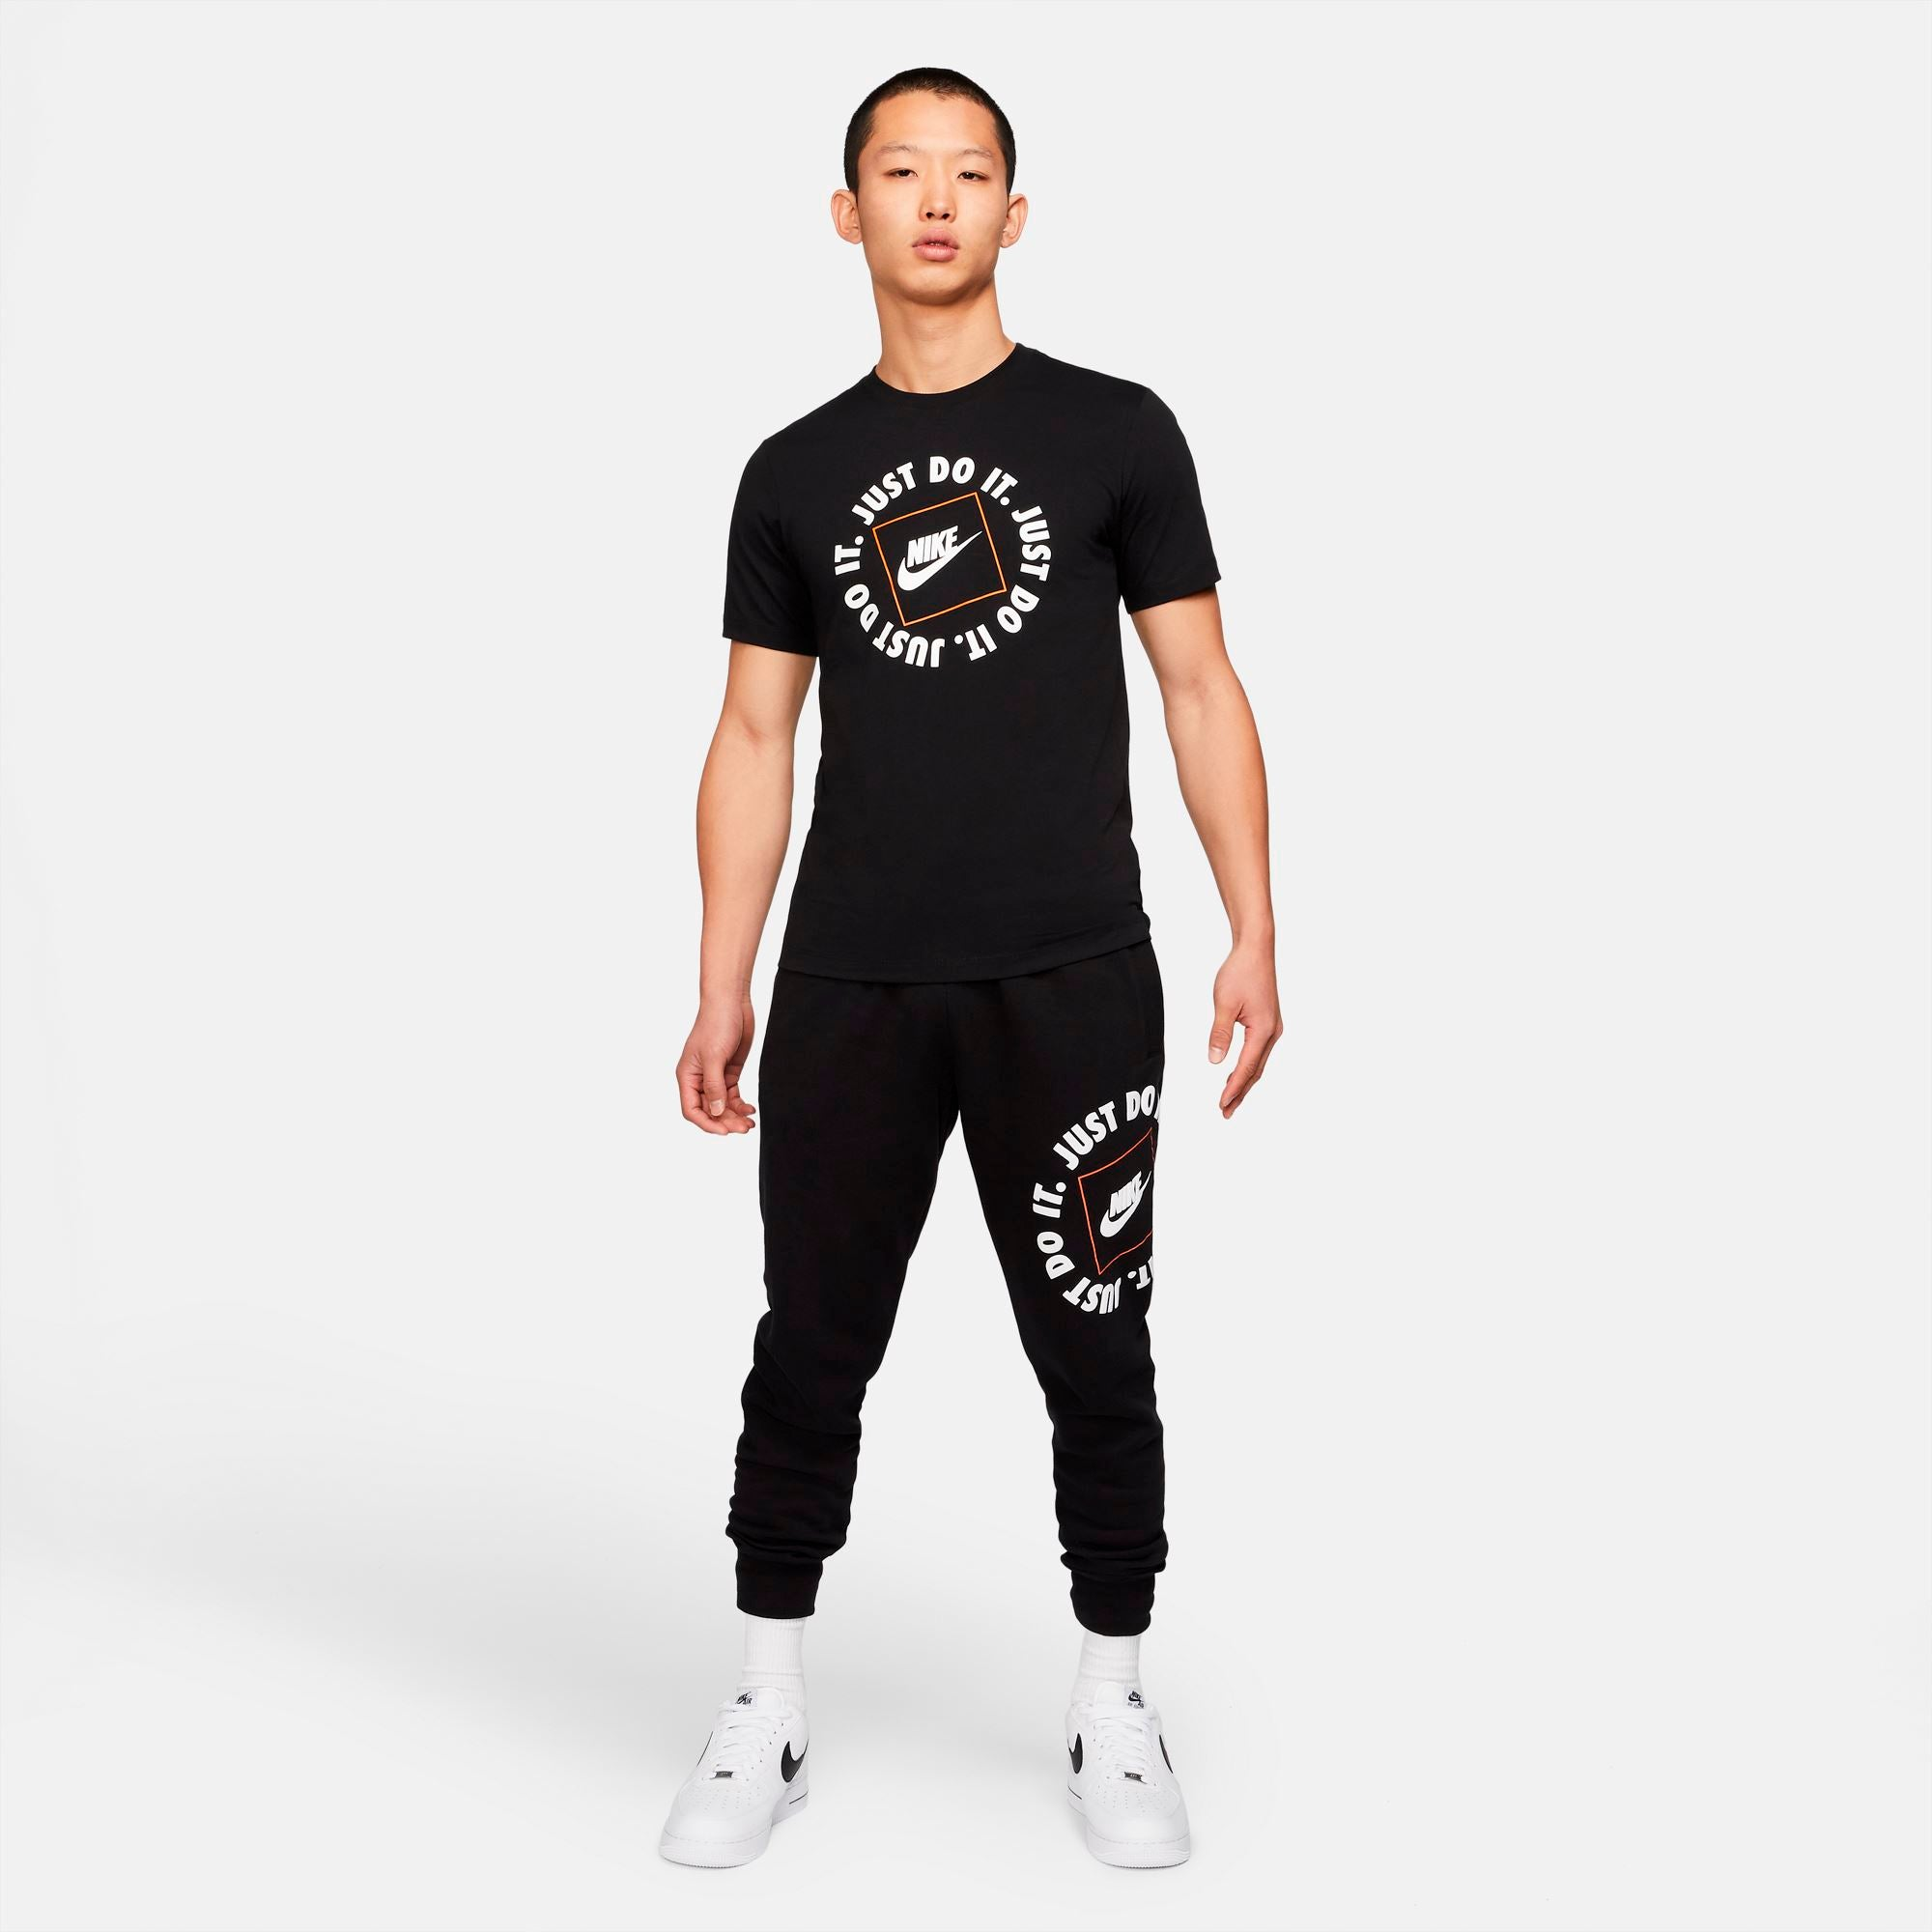 Nike Mens Sportswear JDI Tee - Black SP-ApparelTees-Mens Nike